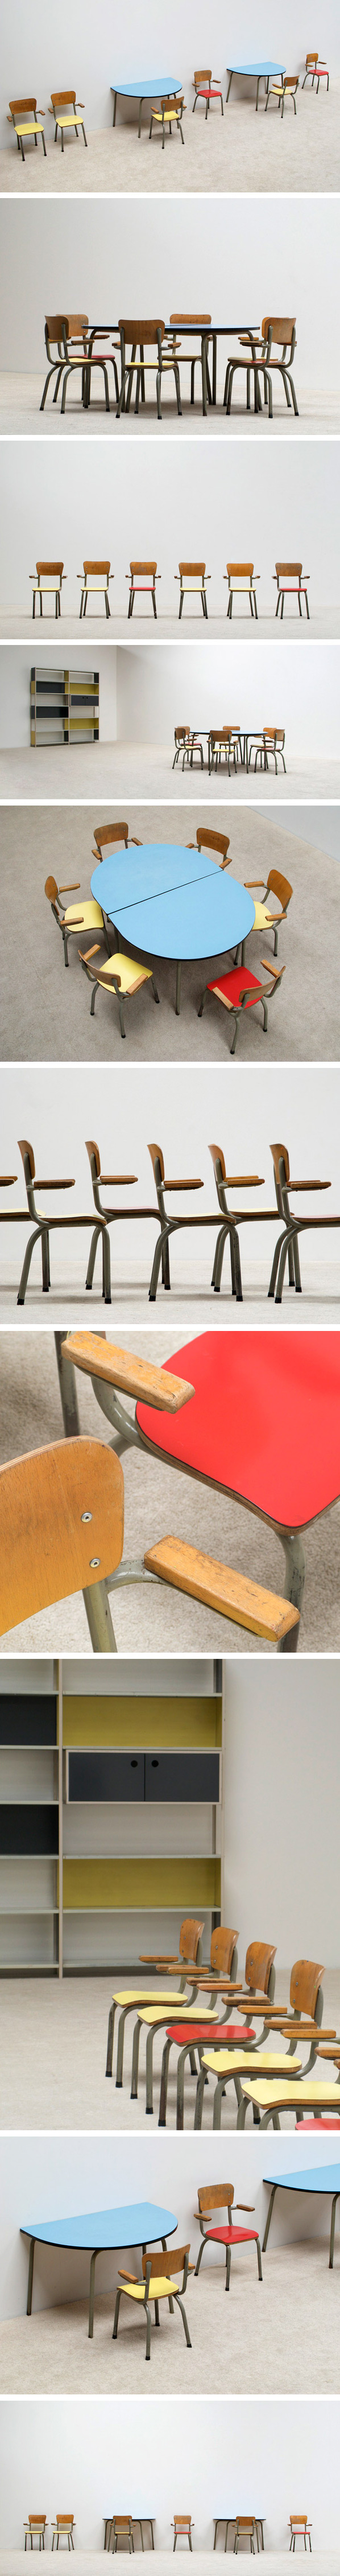 Tubax school tables with 6 chairs for children Large